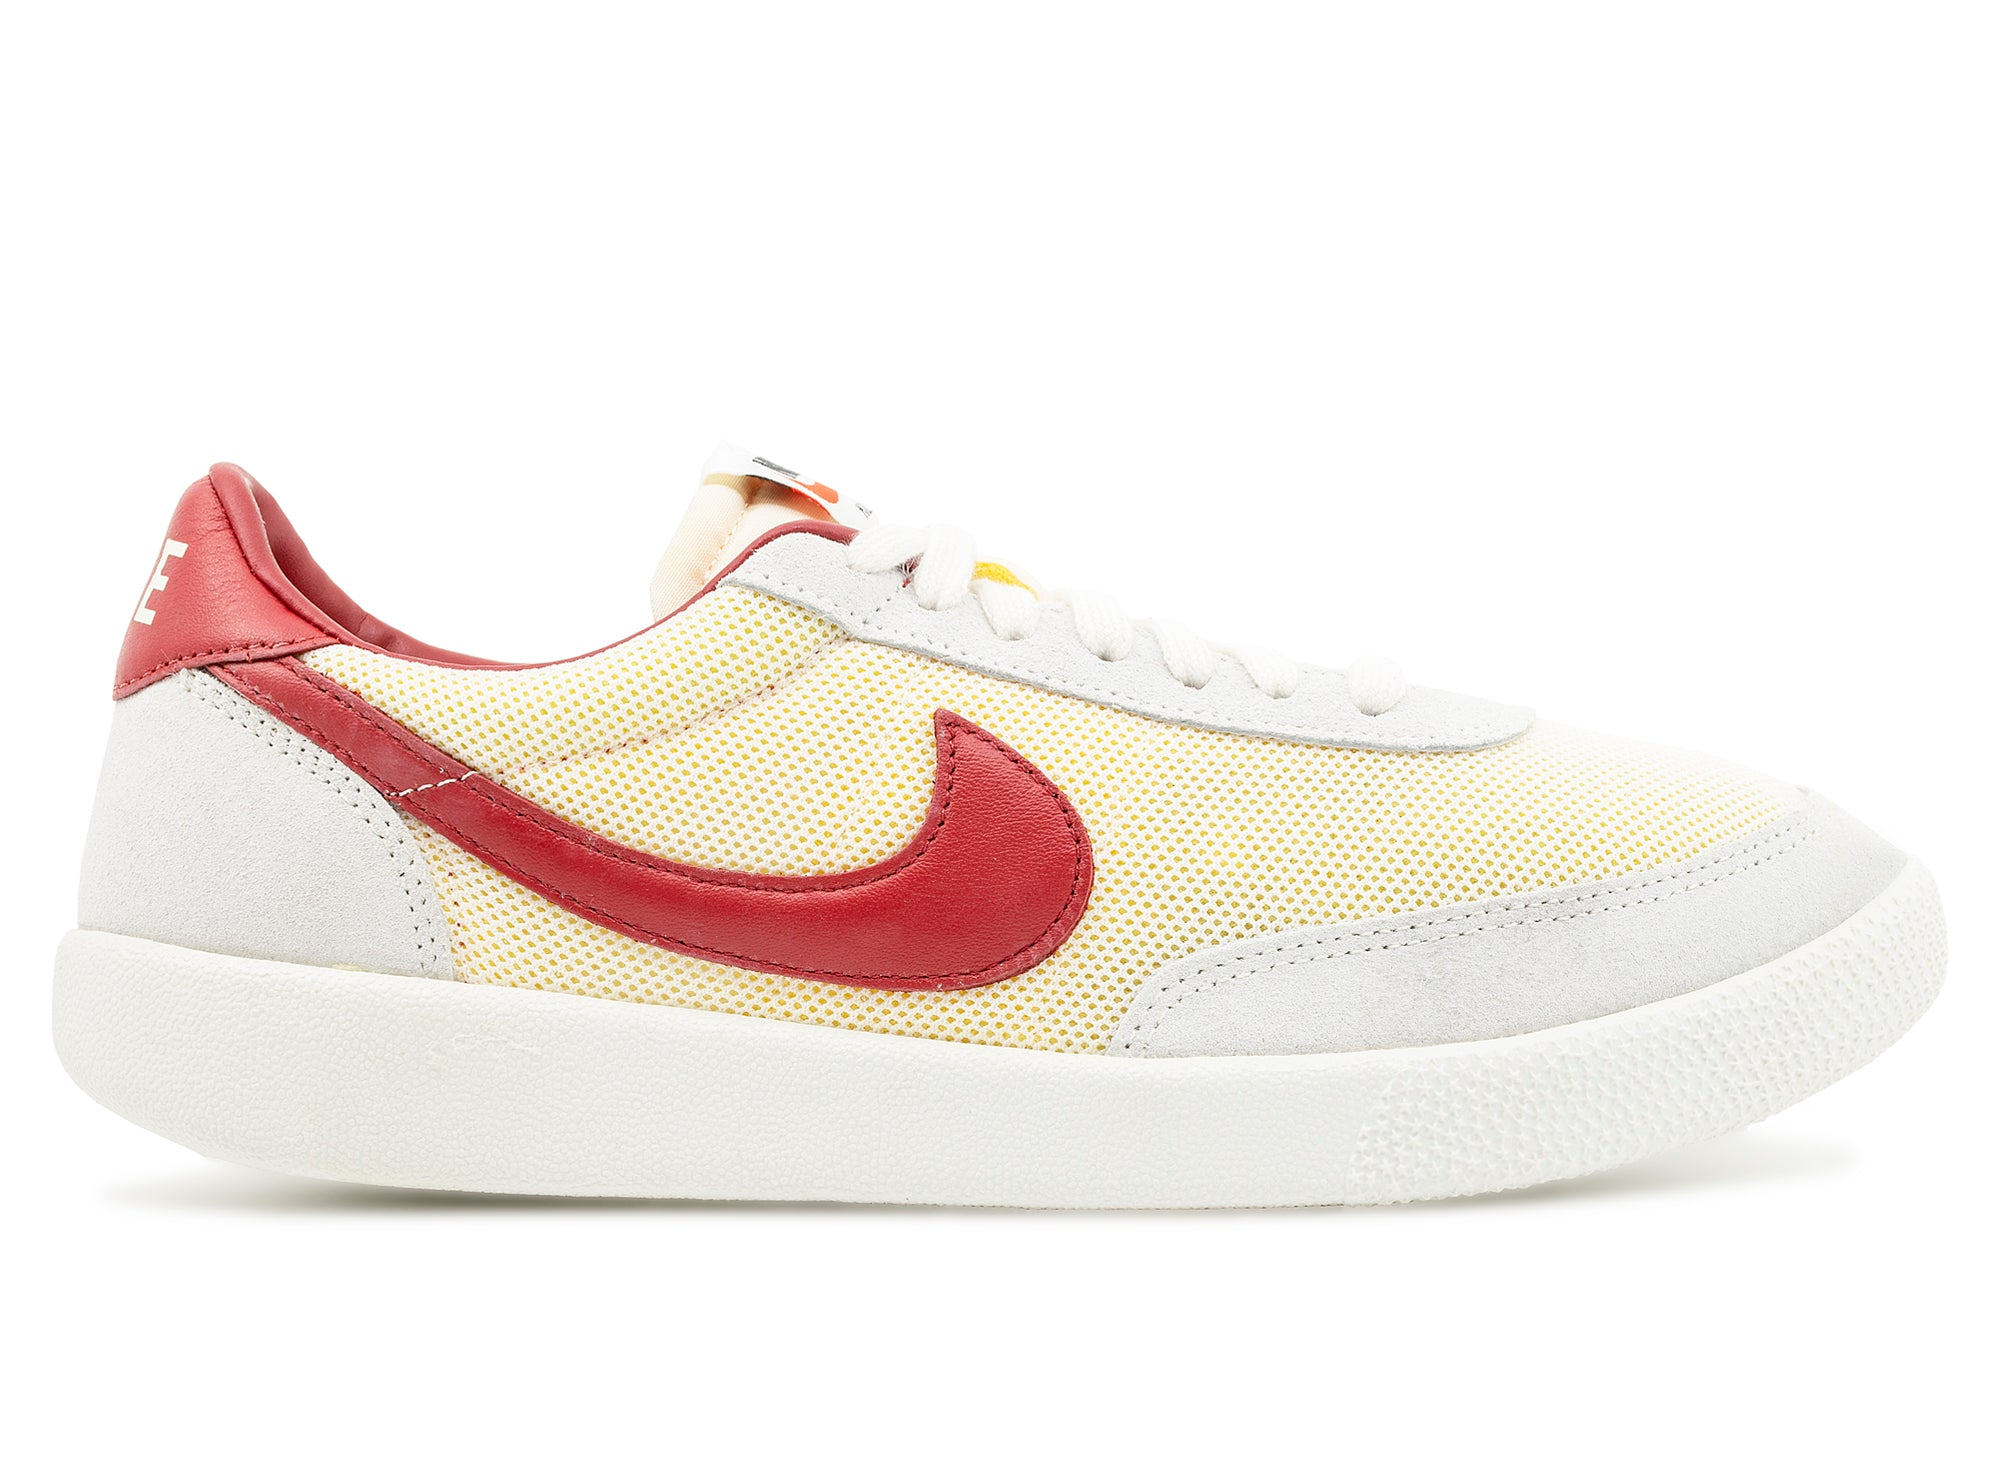 Nike Killshot OG SP xld